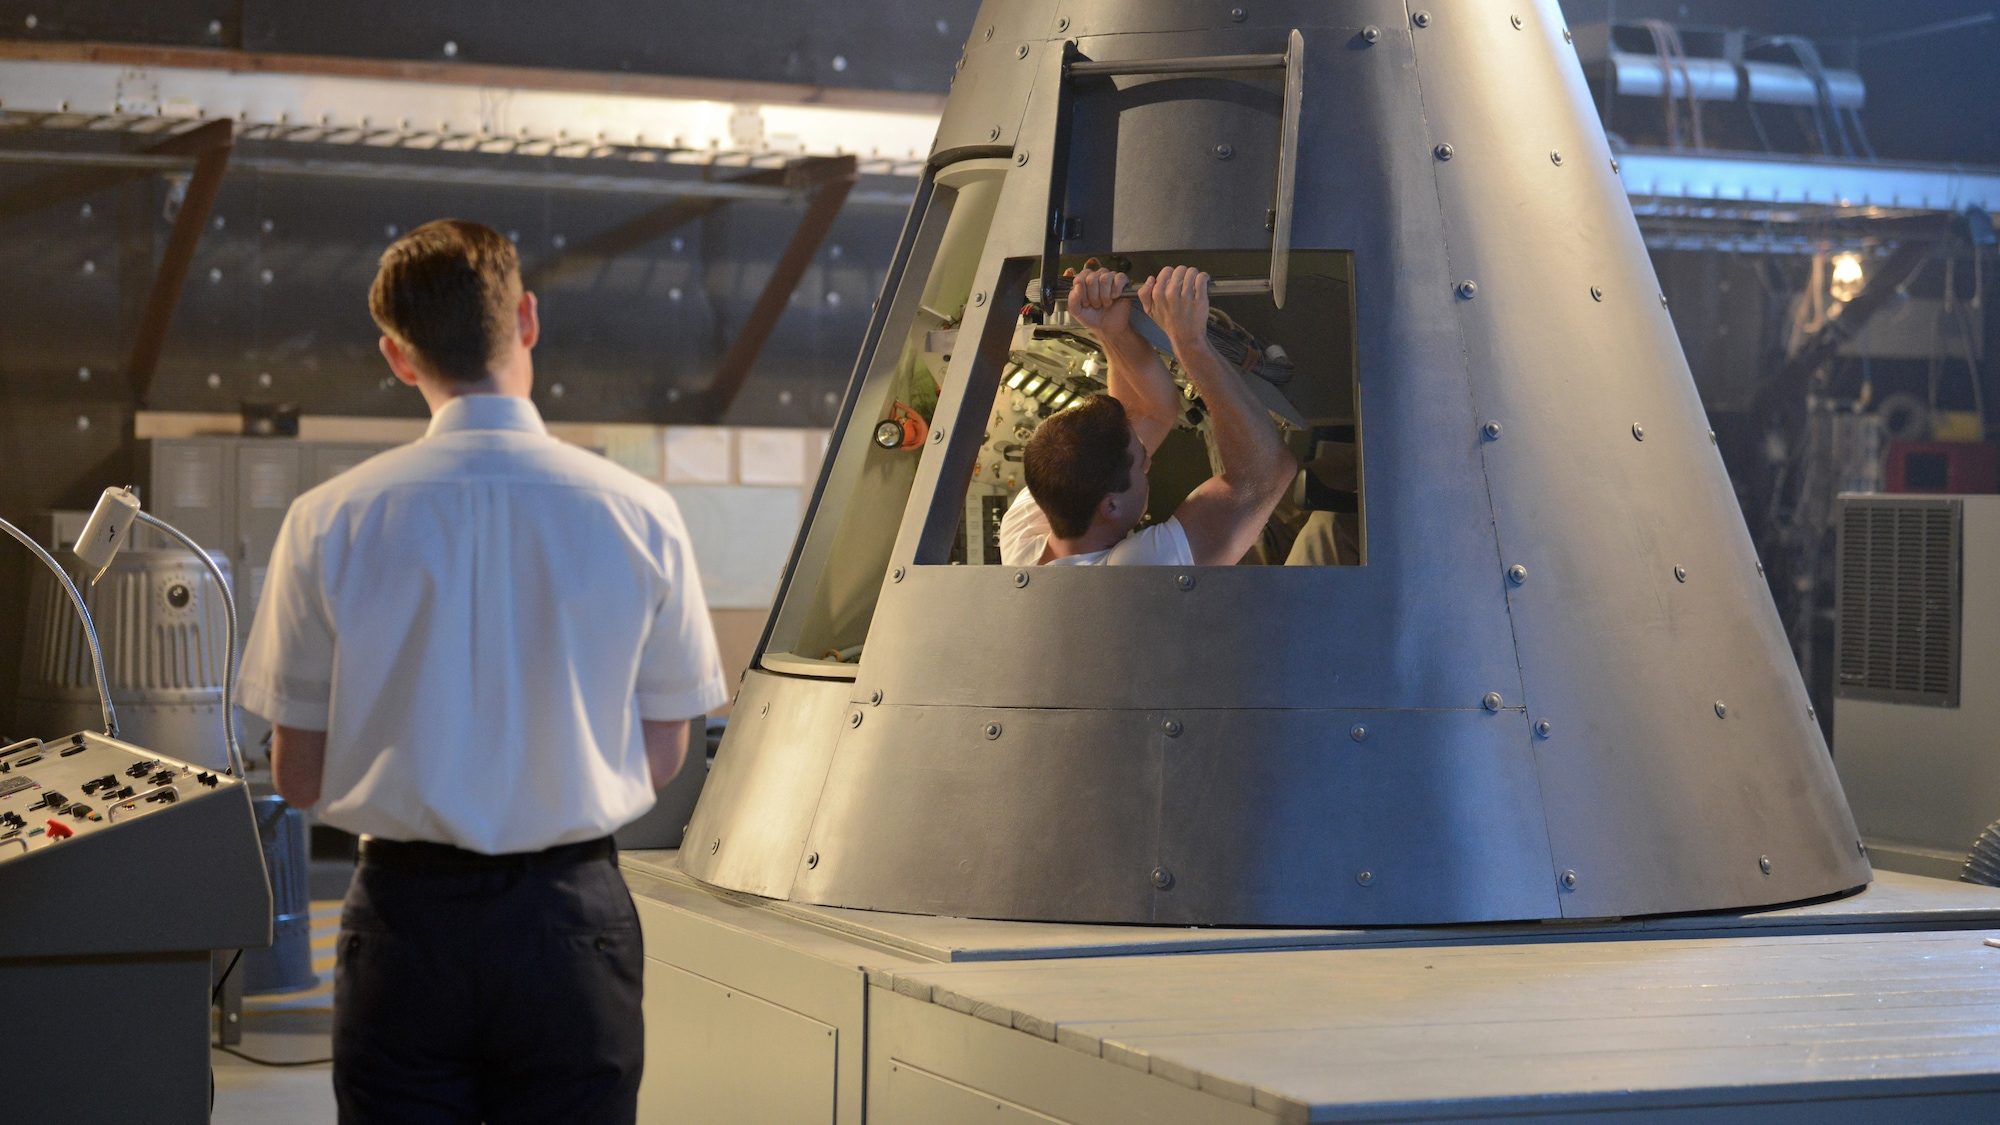 Glynn Lunney (L) played by Jackson Pace stands by while Alan Shepard played by Jake McDorman enters the trainer capsule during a practice session in National Geographic's THE RIGHT STUFF. (Credit: National Geographic/Gene Page)